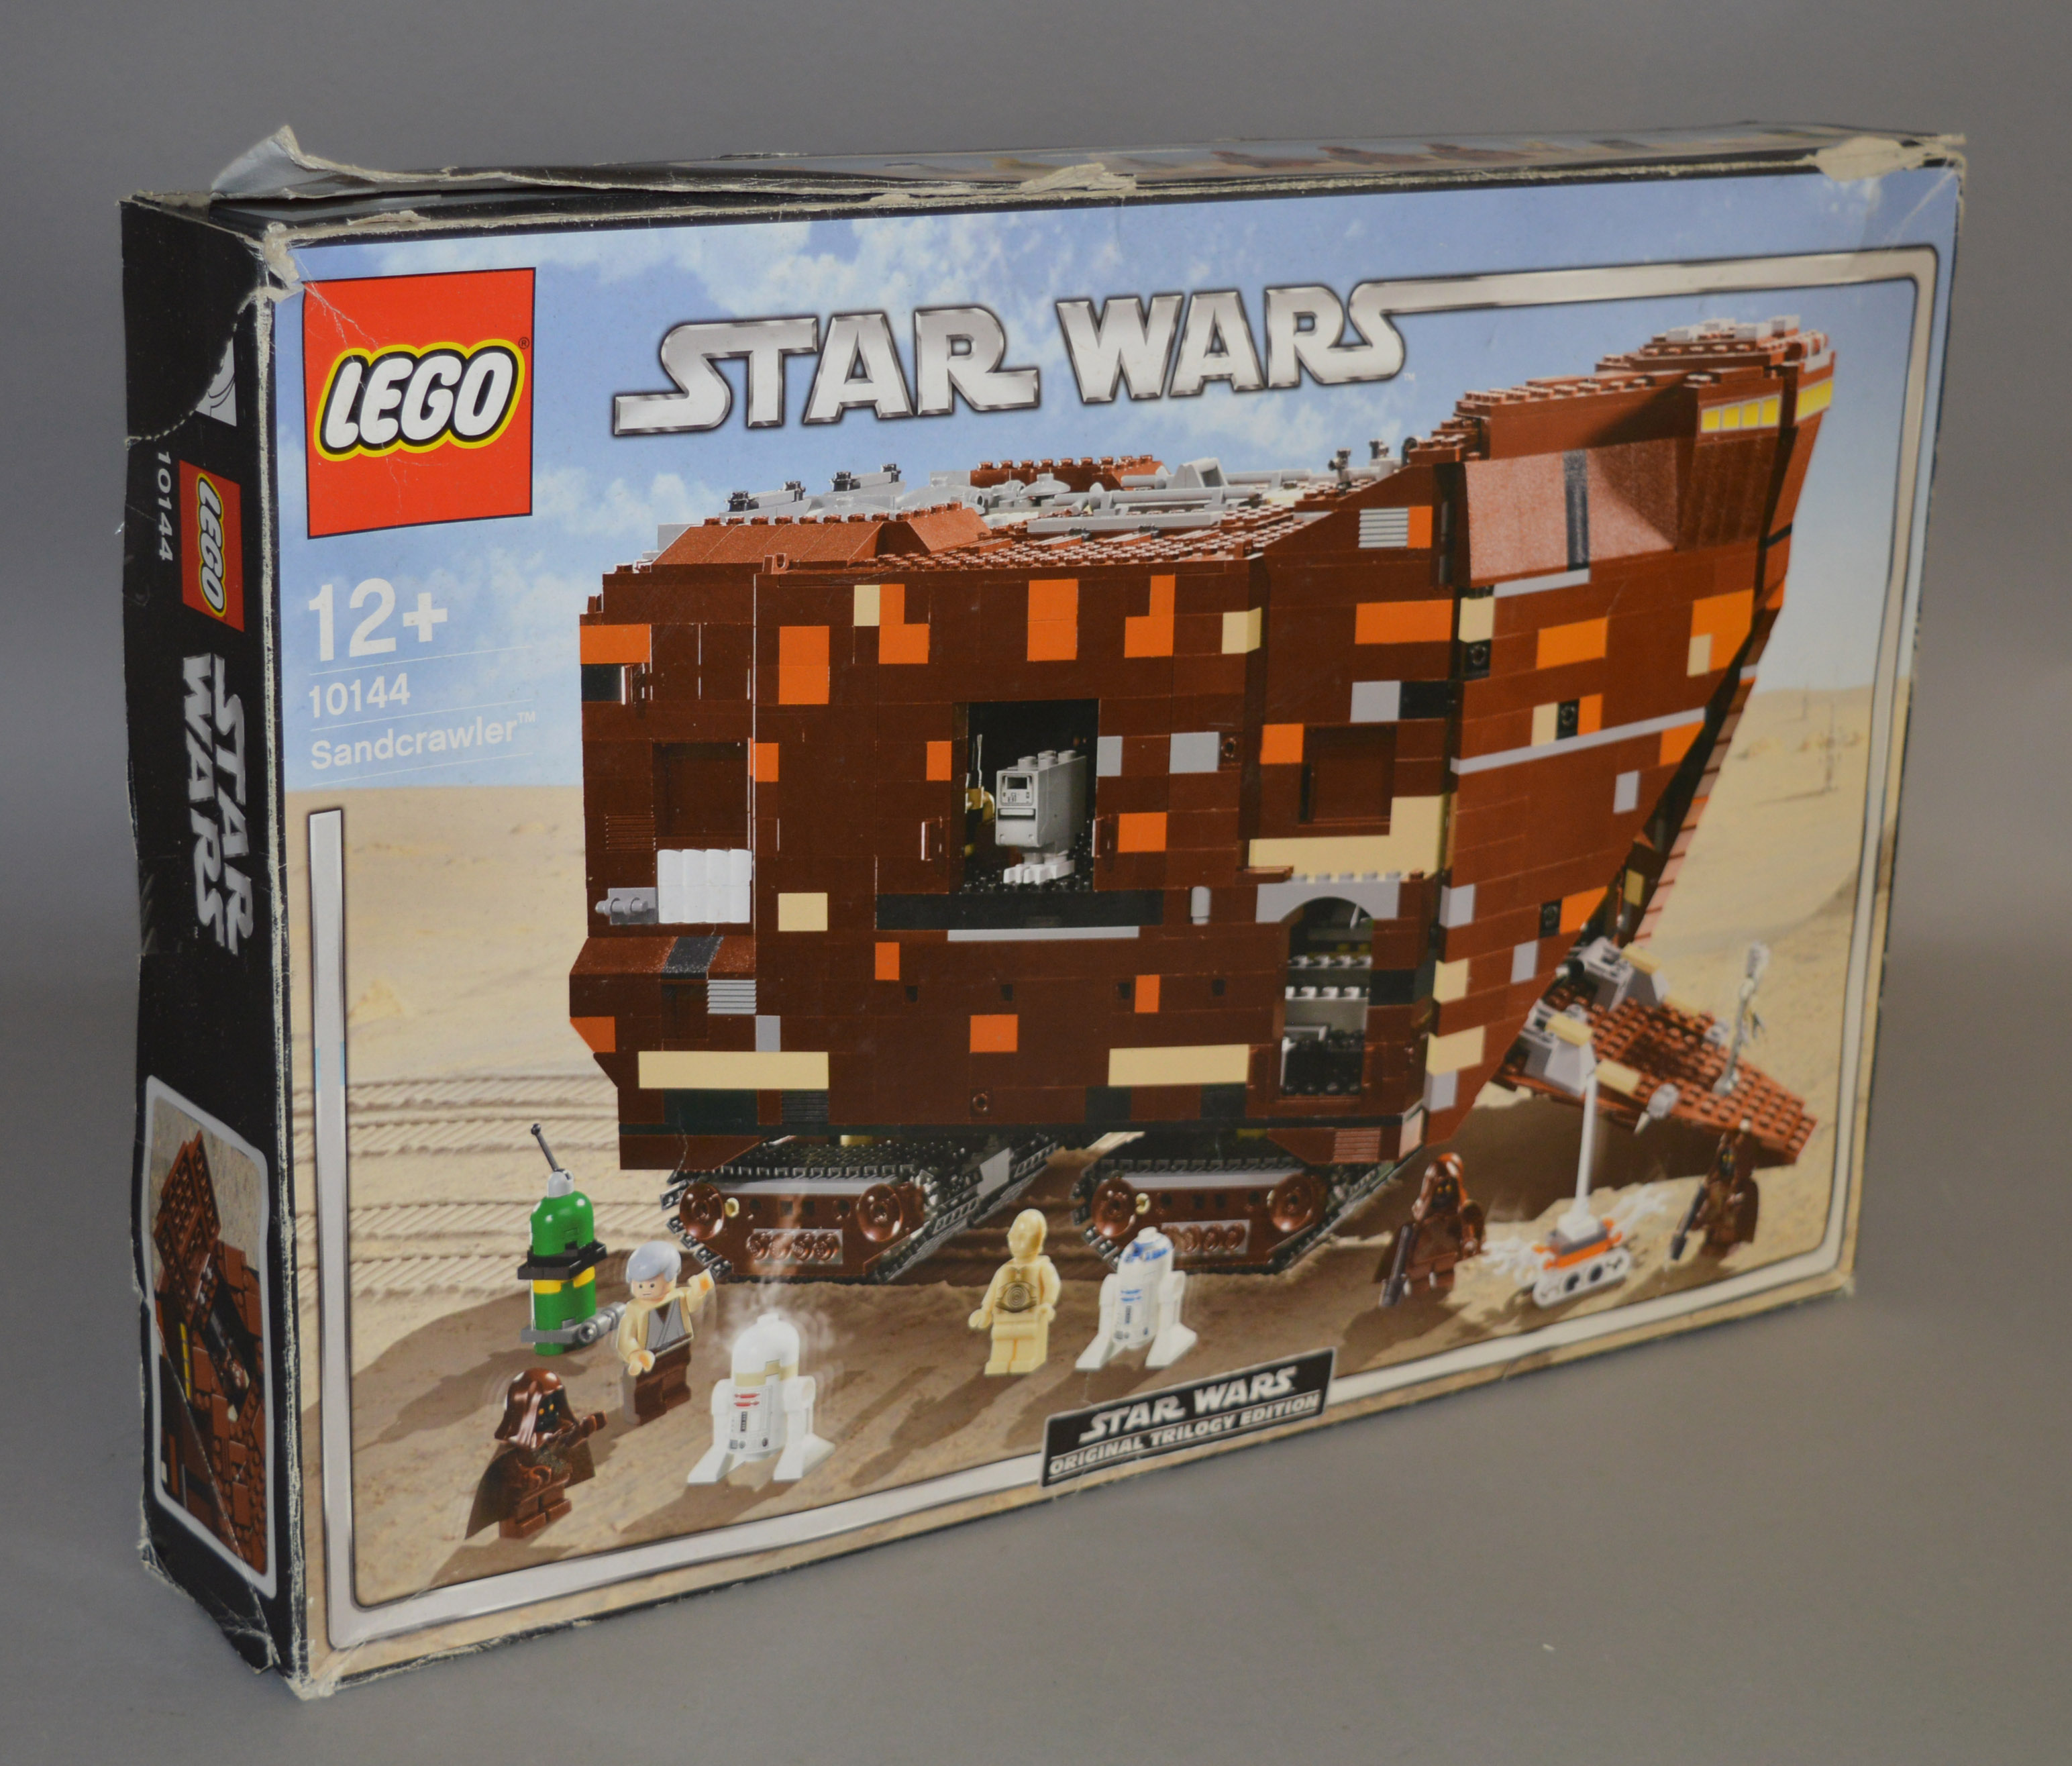 Lot 46 - Lego Star Wars 10144 'Sandcrawler', in generally F box, with crushing, tears and creasing.